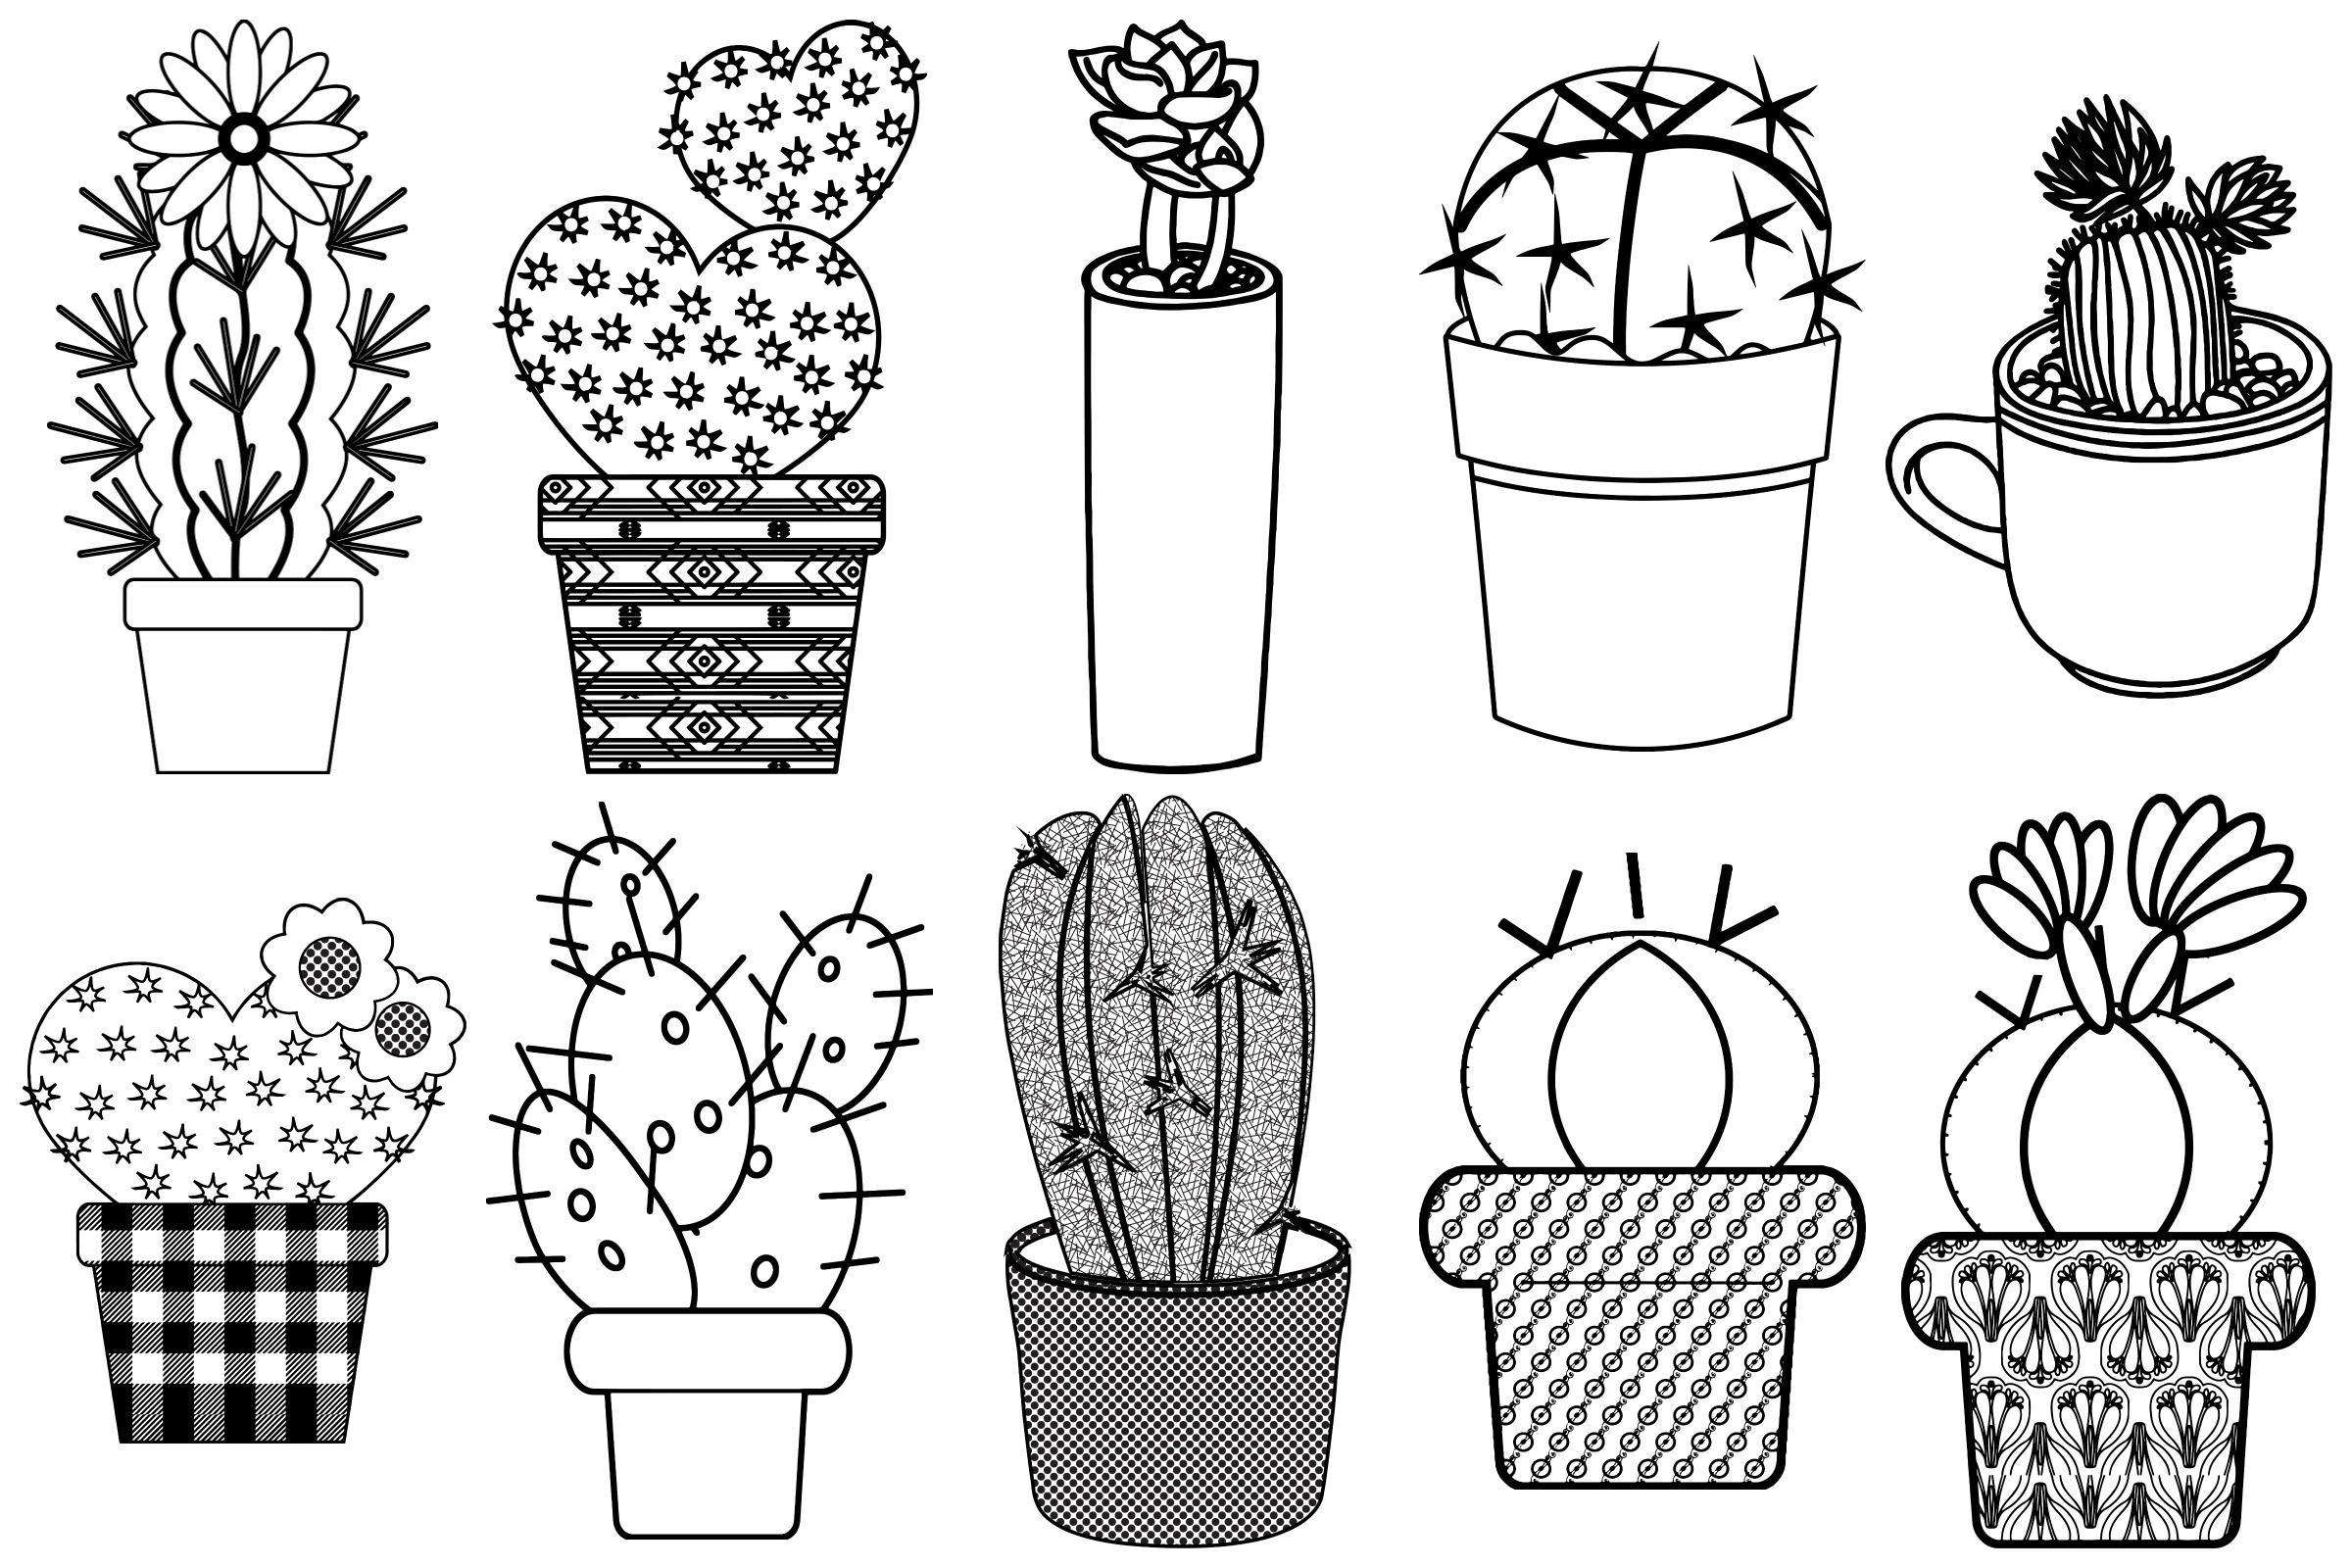 Cactus and Succulents AI EPS PNG, Vector Clip Art example image 2